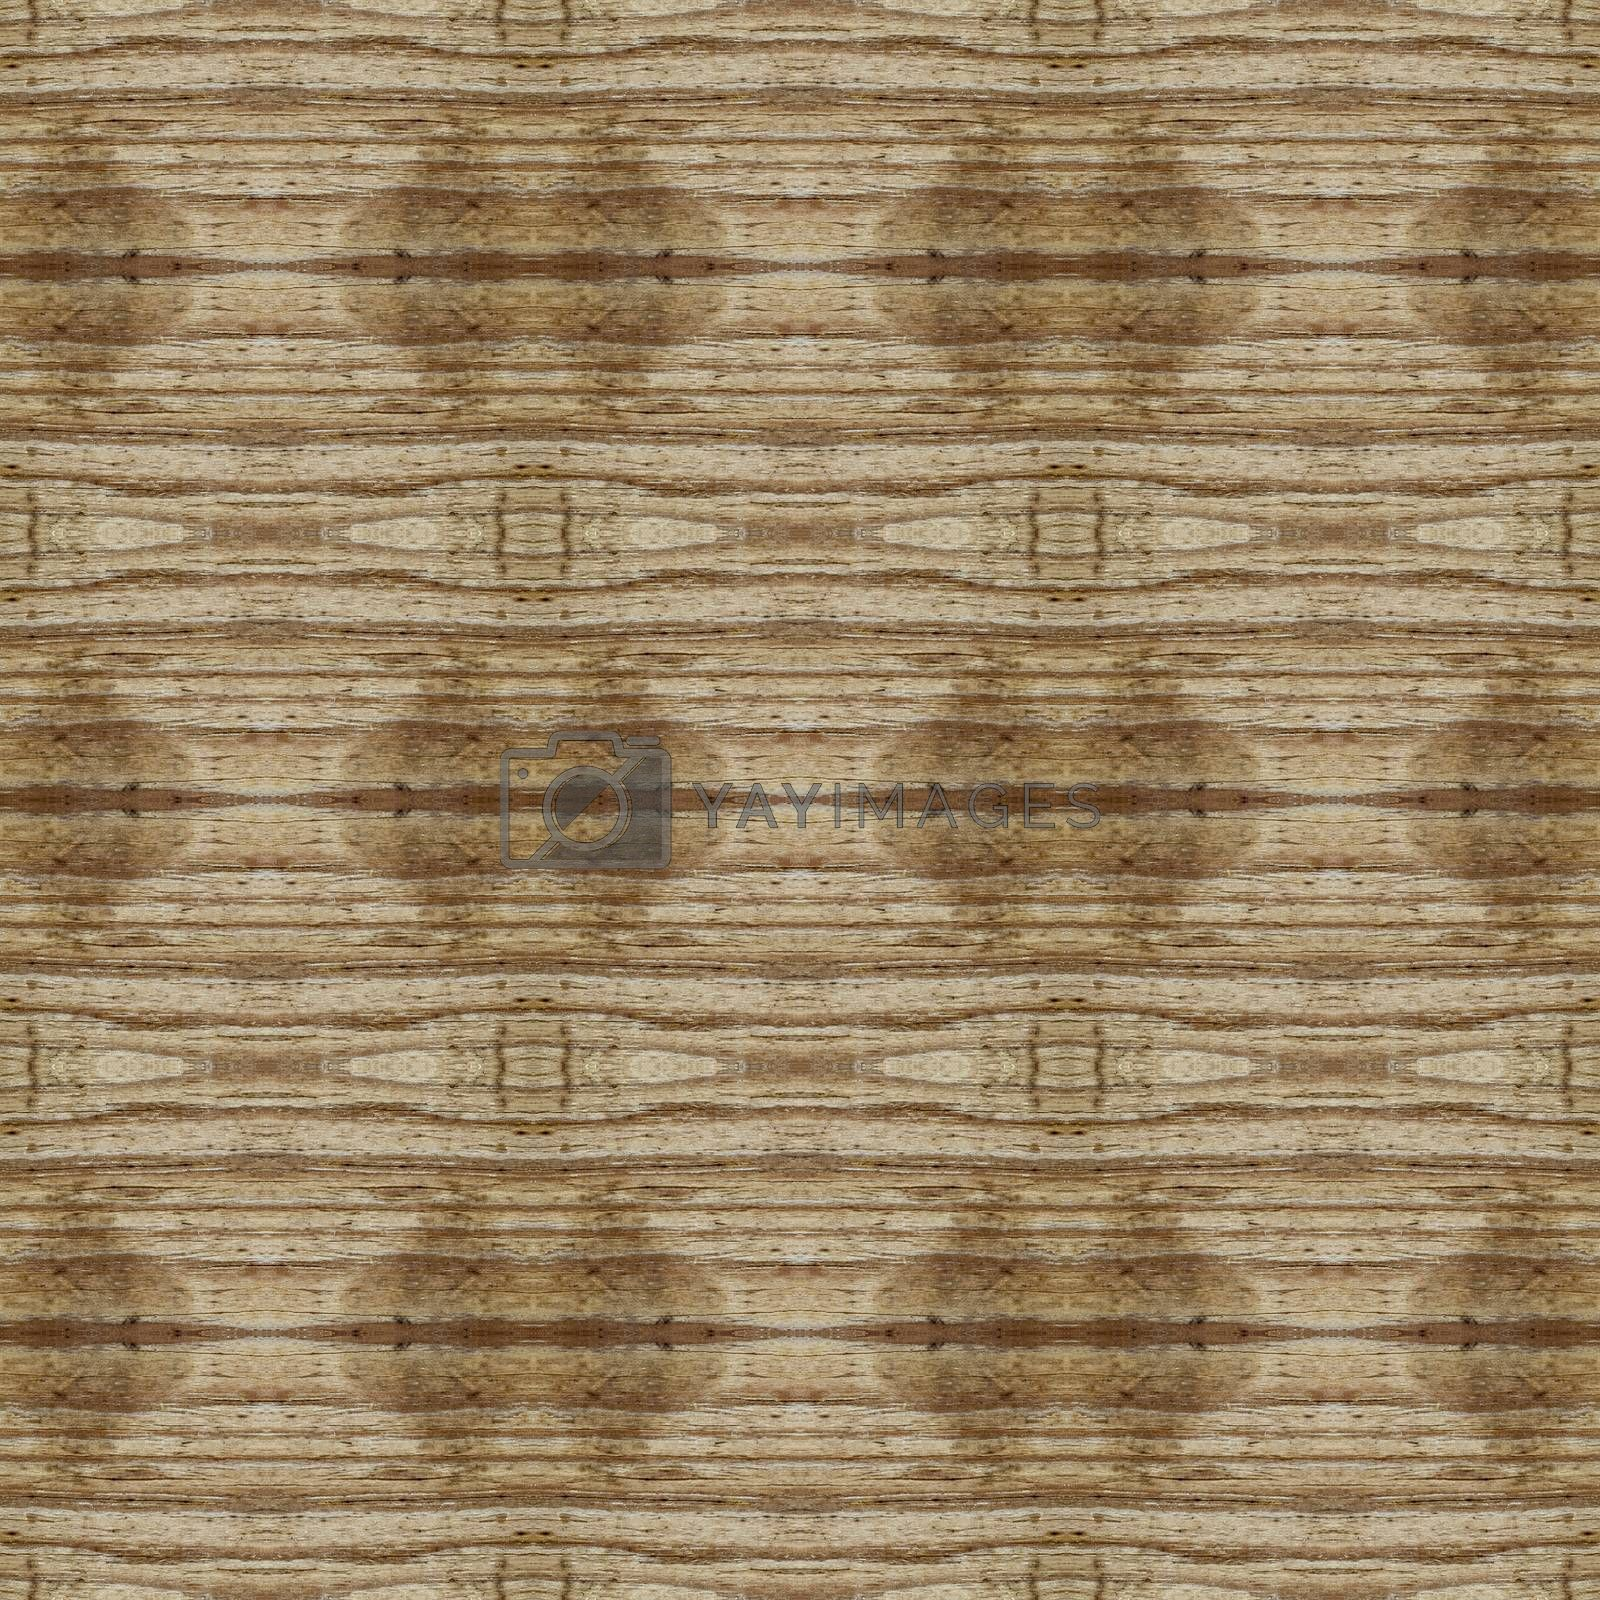 Royalty free image of Vintage shabby background with classy patterns by H2Oshka